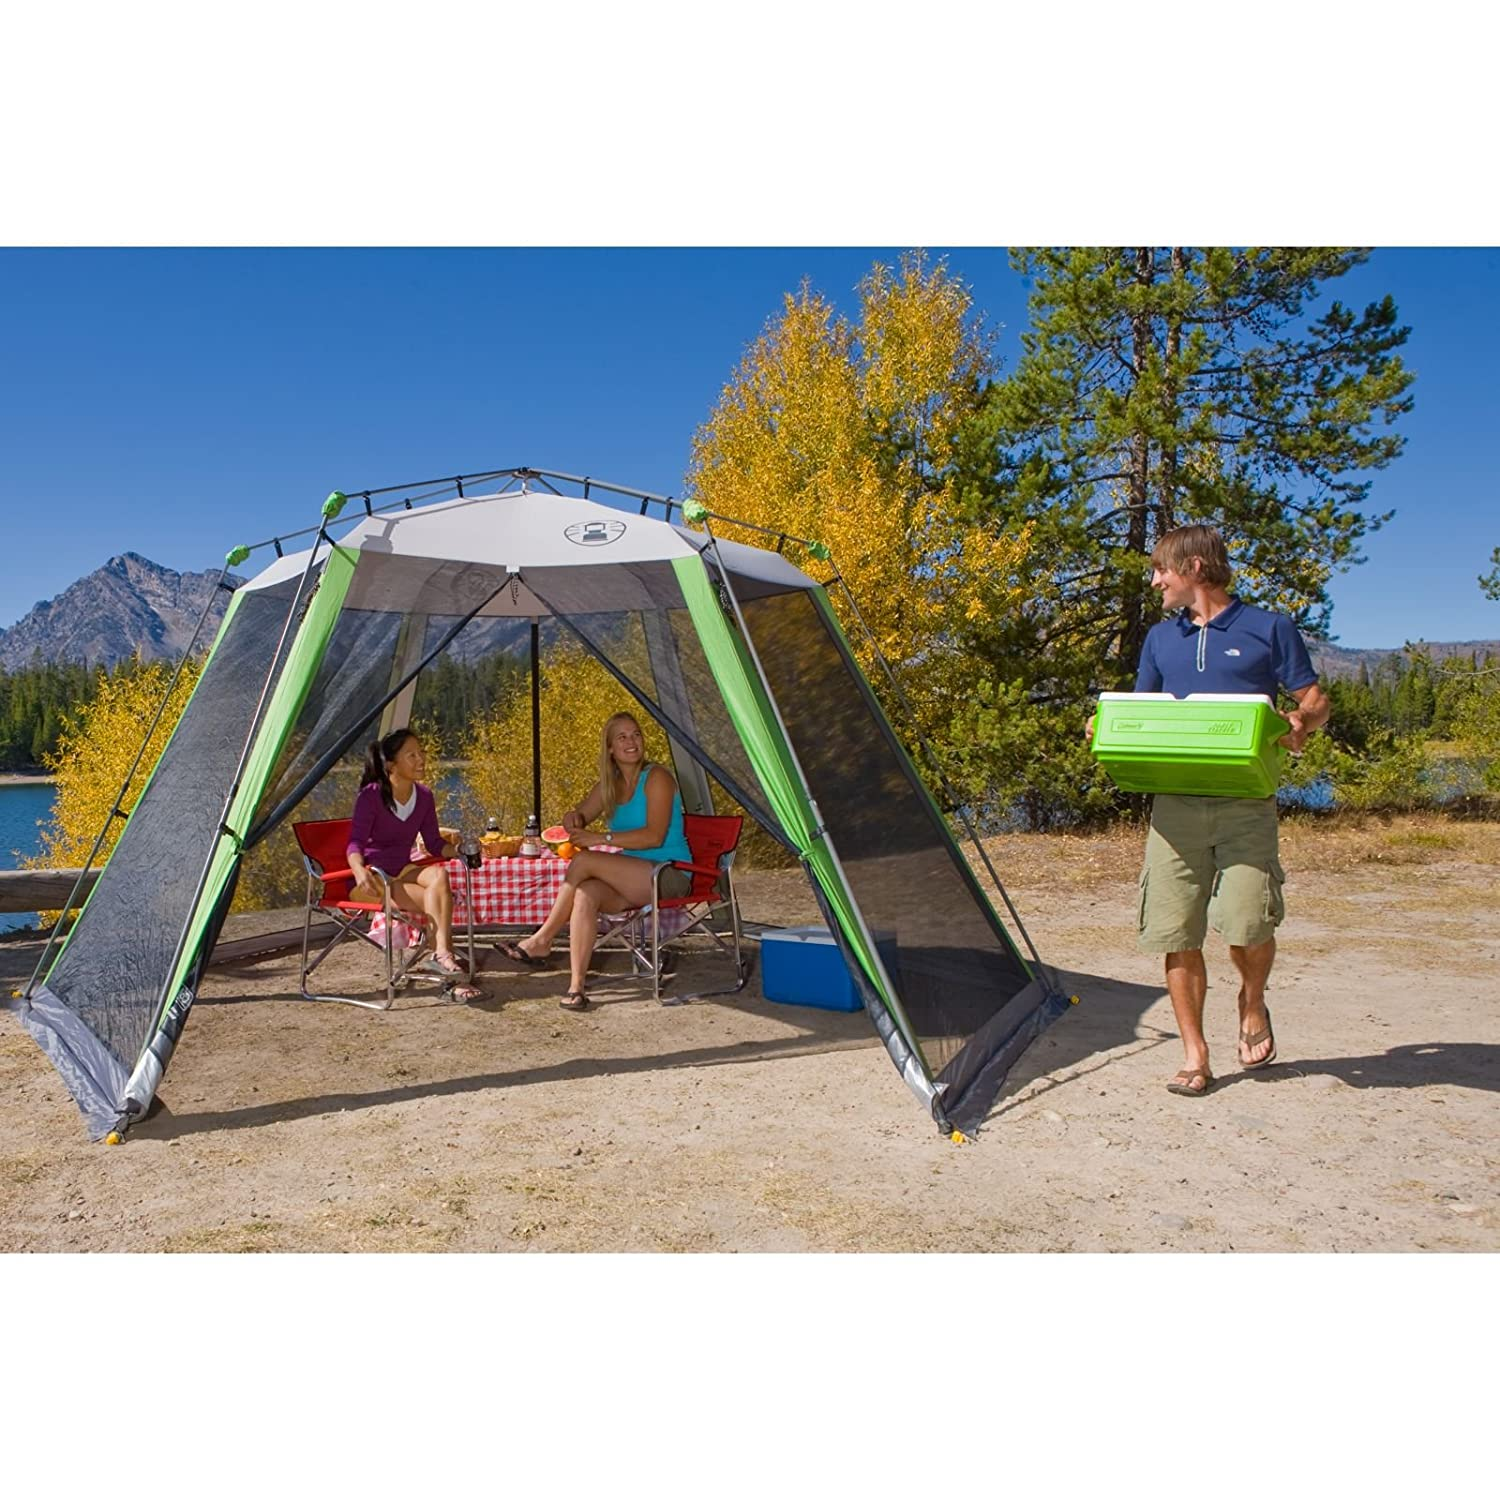 Tent screen house camping beach travel picnics sun shelter for Tent a house